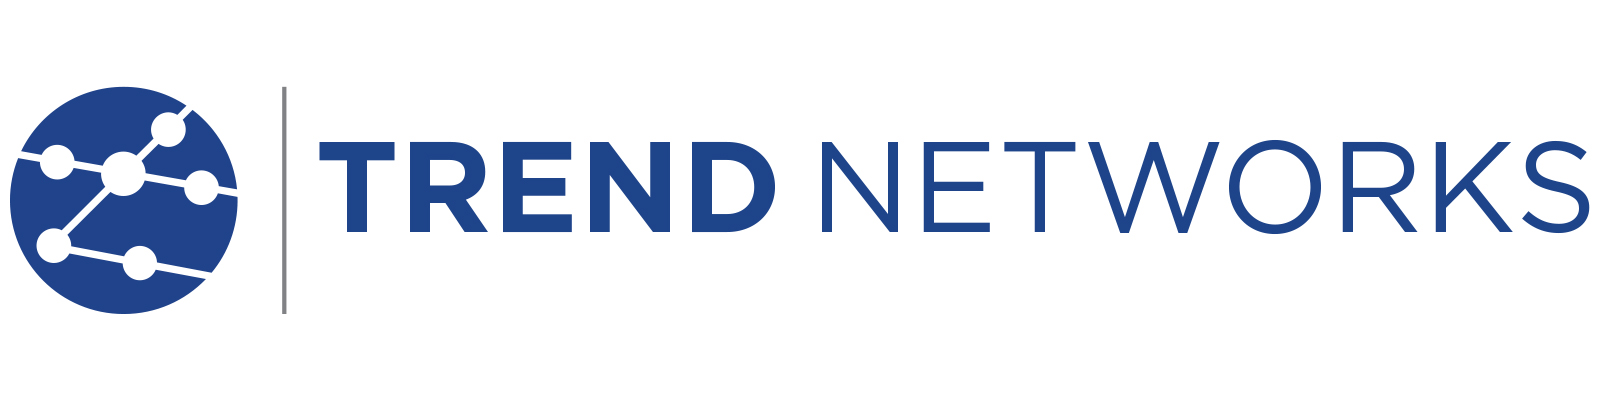 TREND NETWORKS Logo